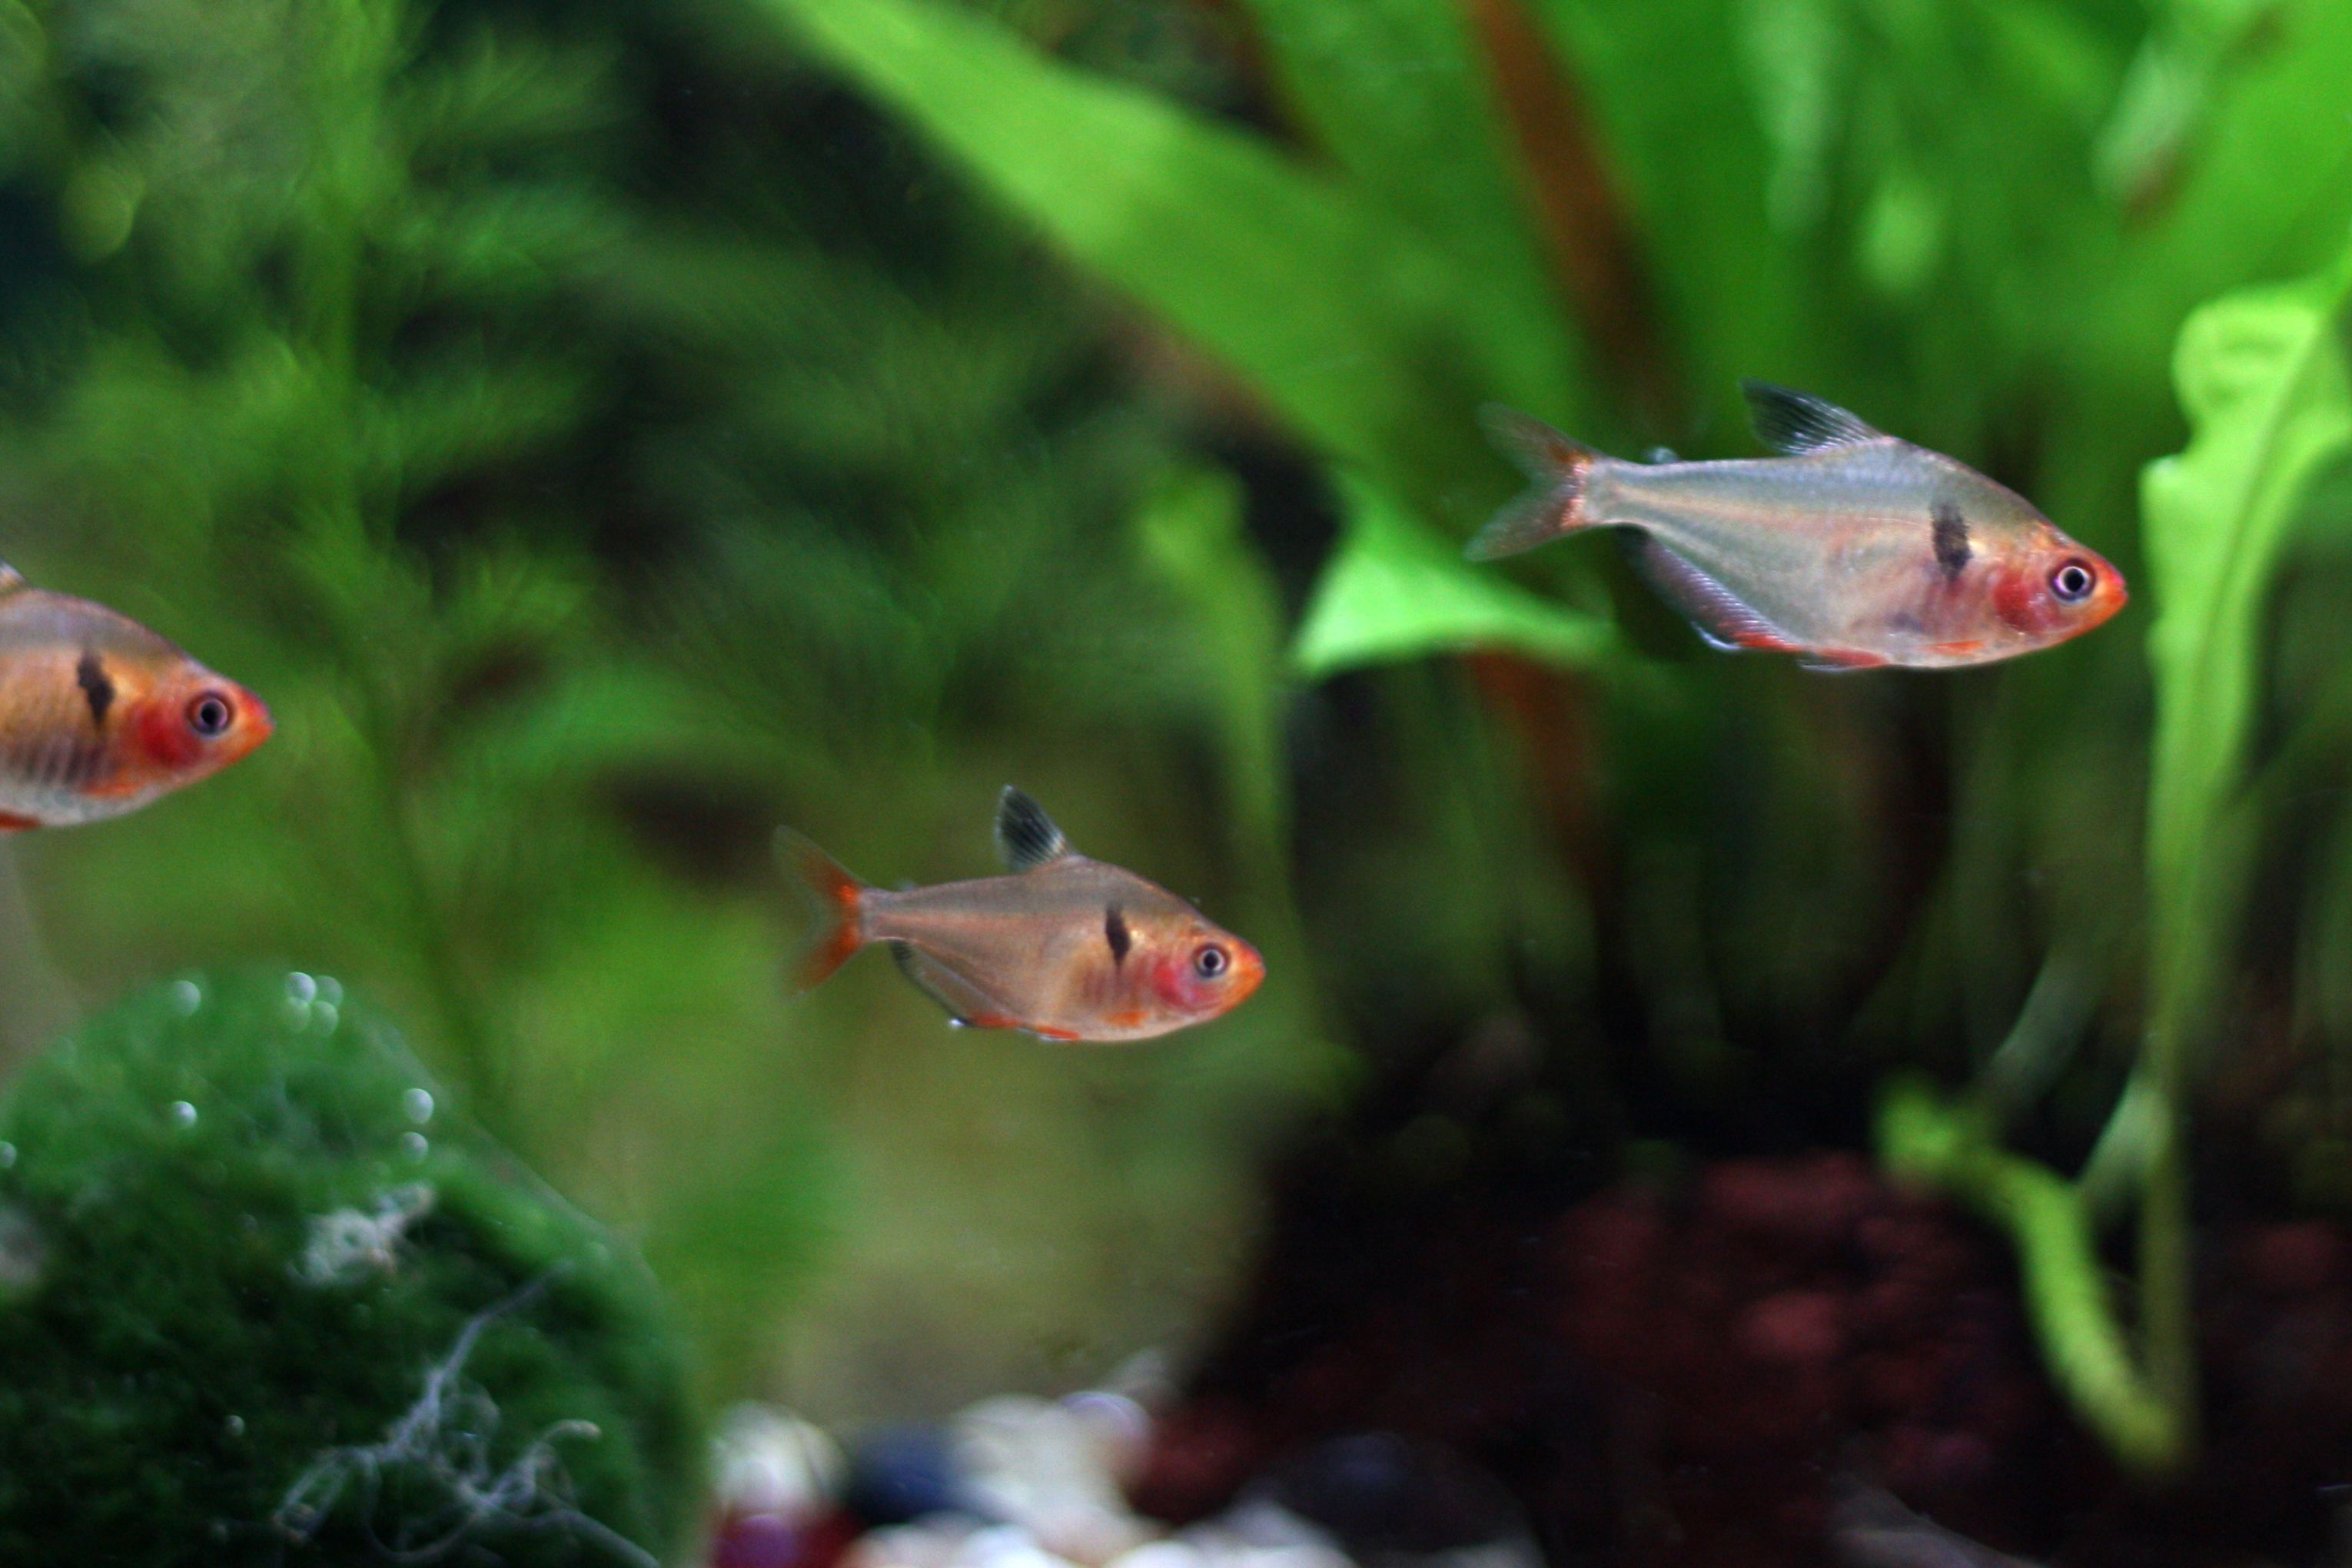 Freshwater aquarium fish information - Common Fish Names Beginning With S Freshwater Aquarium Basics